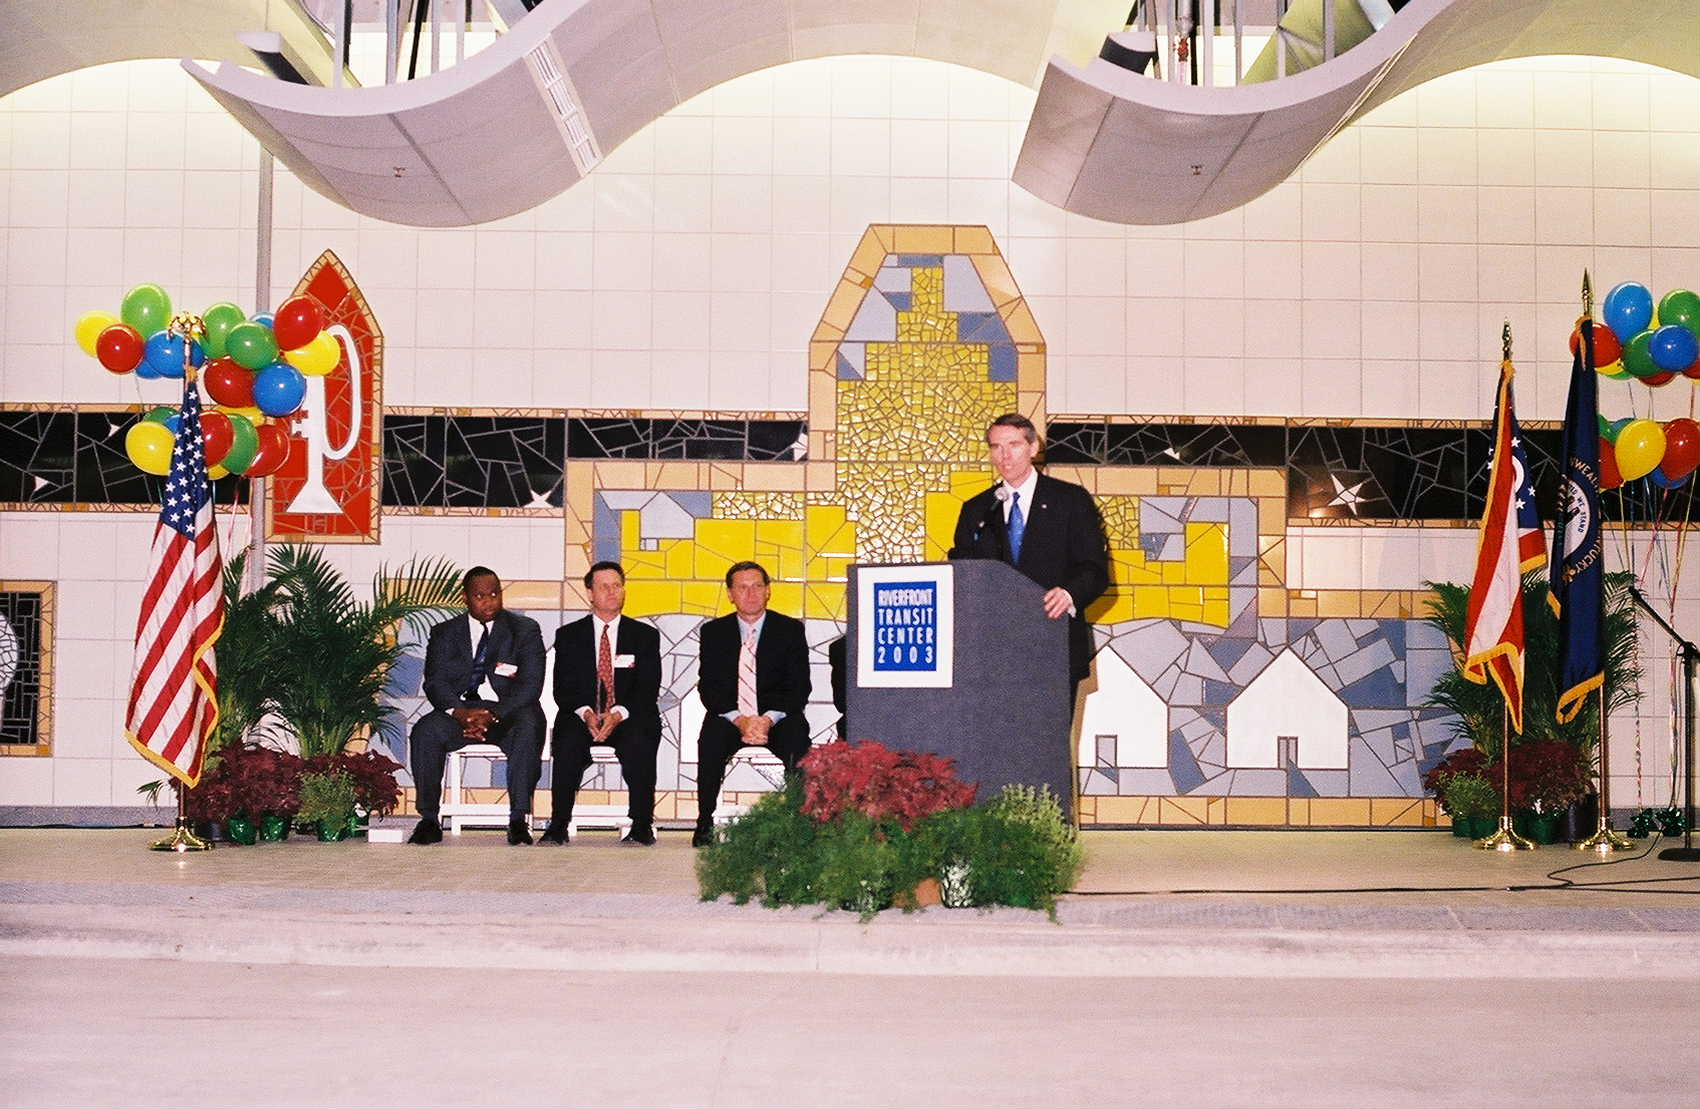 Riverfront Transit Center completed/opened